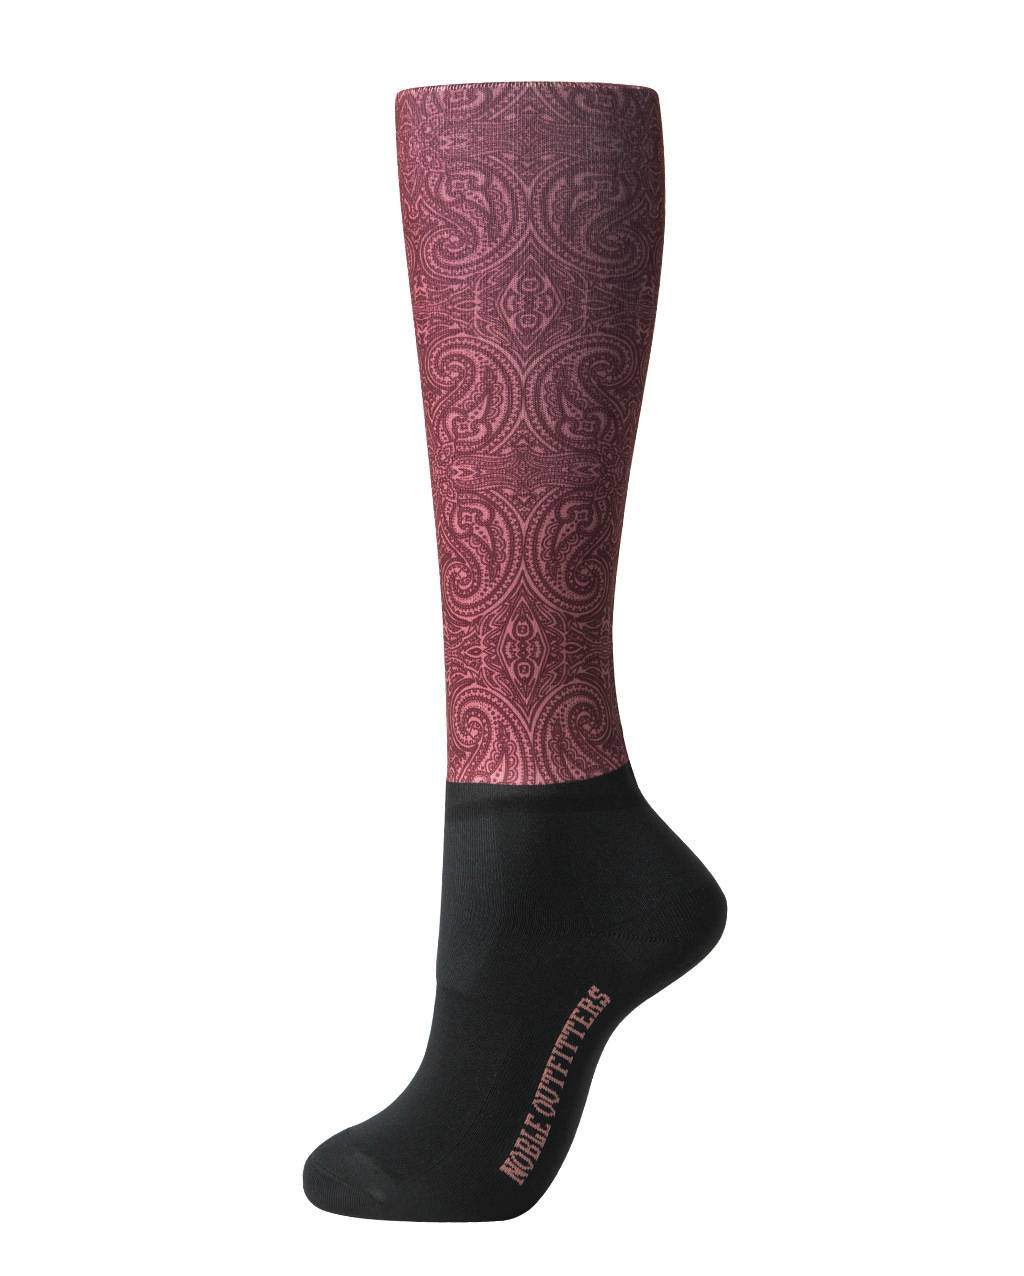 Noble Outfitters Ladies Over the Calf Peddies - Wine Paisley